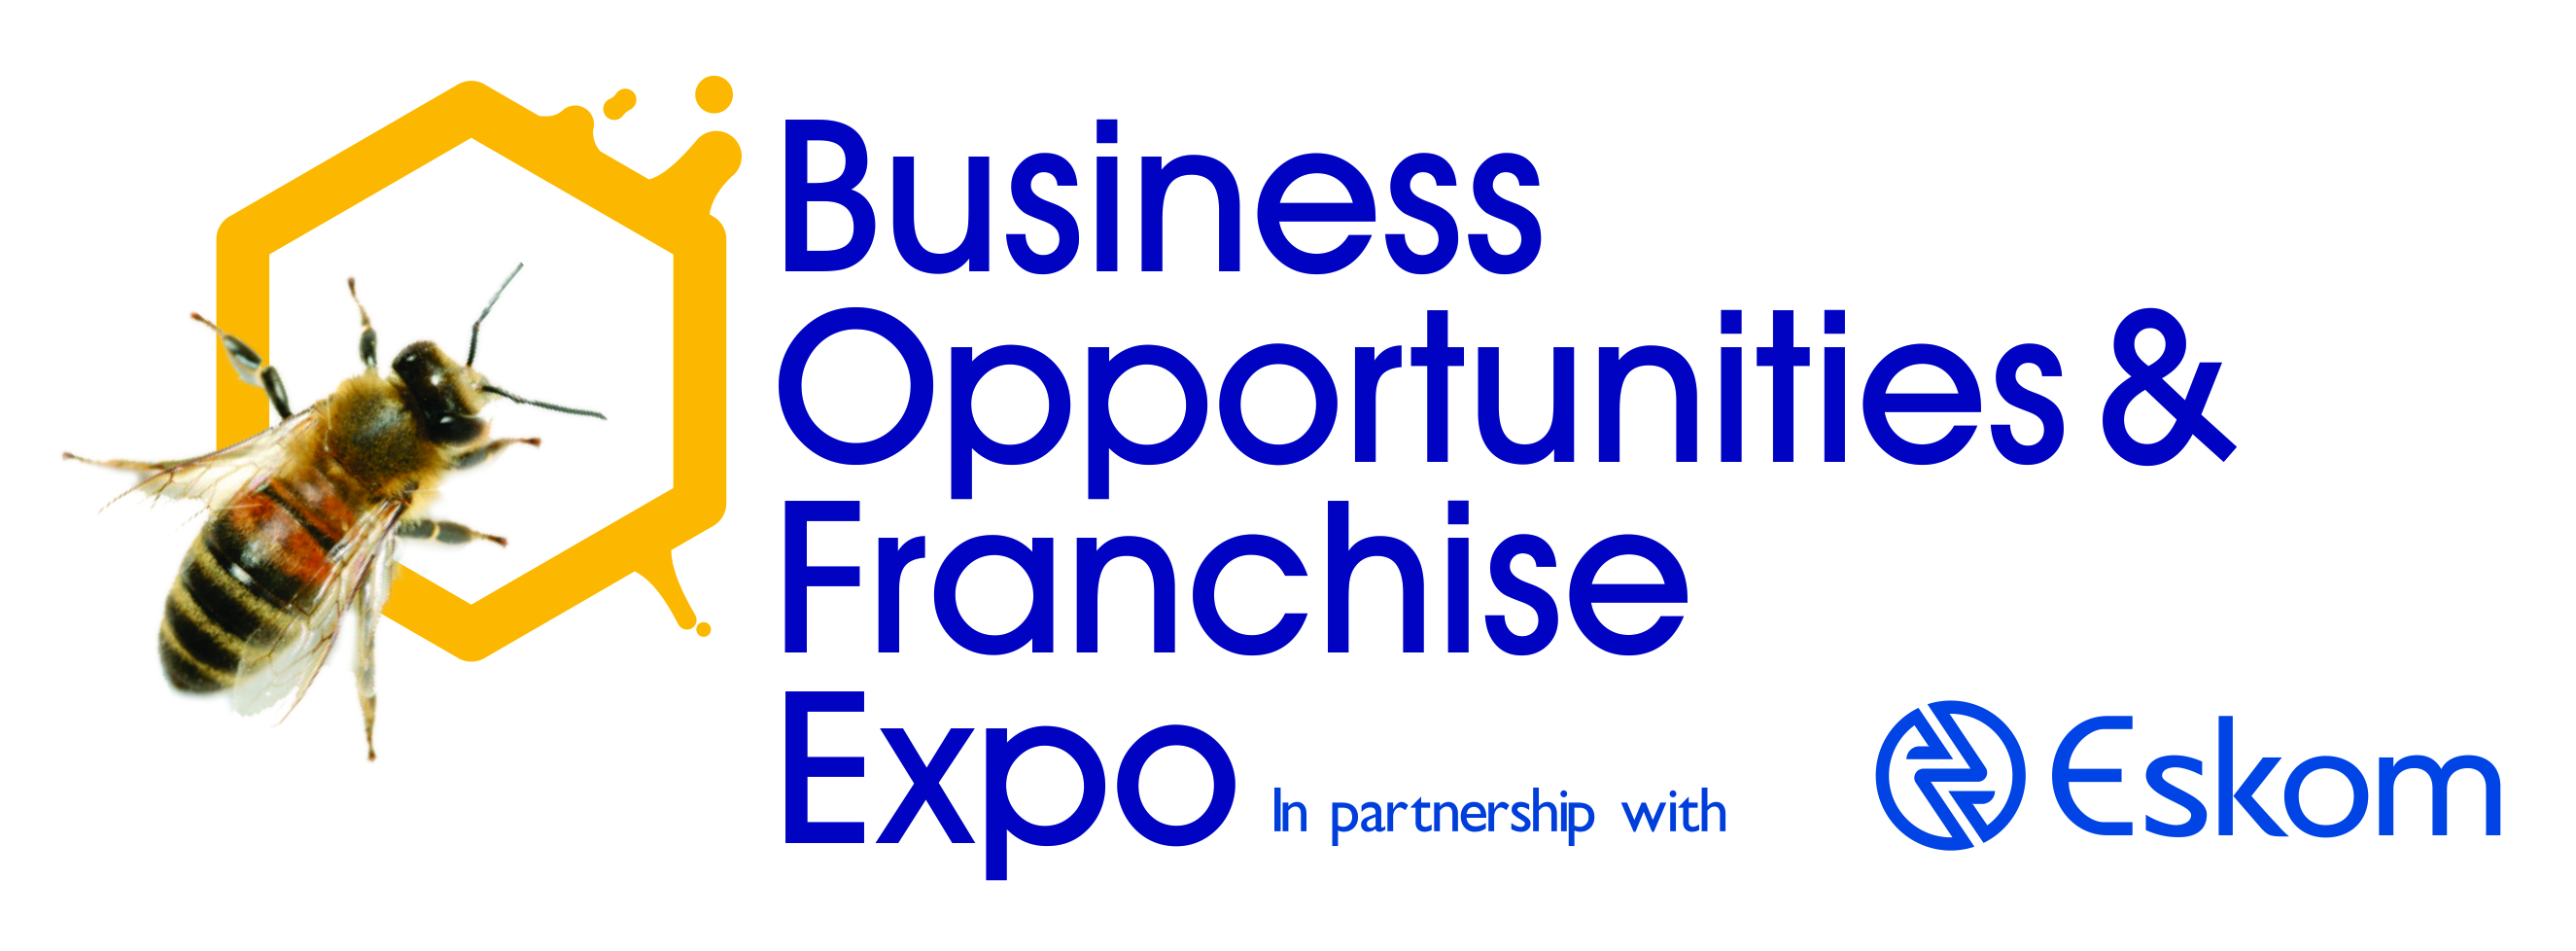 business opportunities and franchise expo offers celebrates its 20th